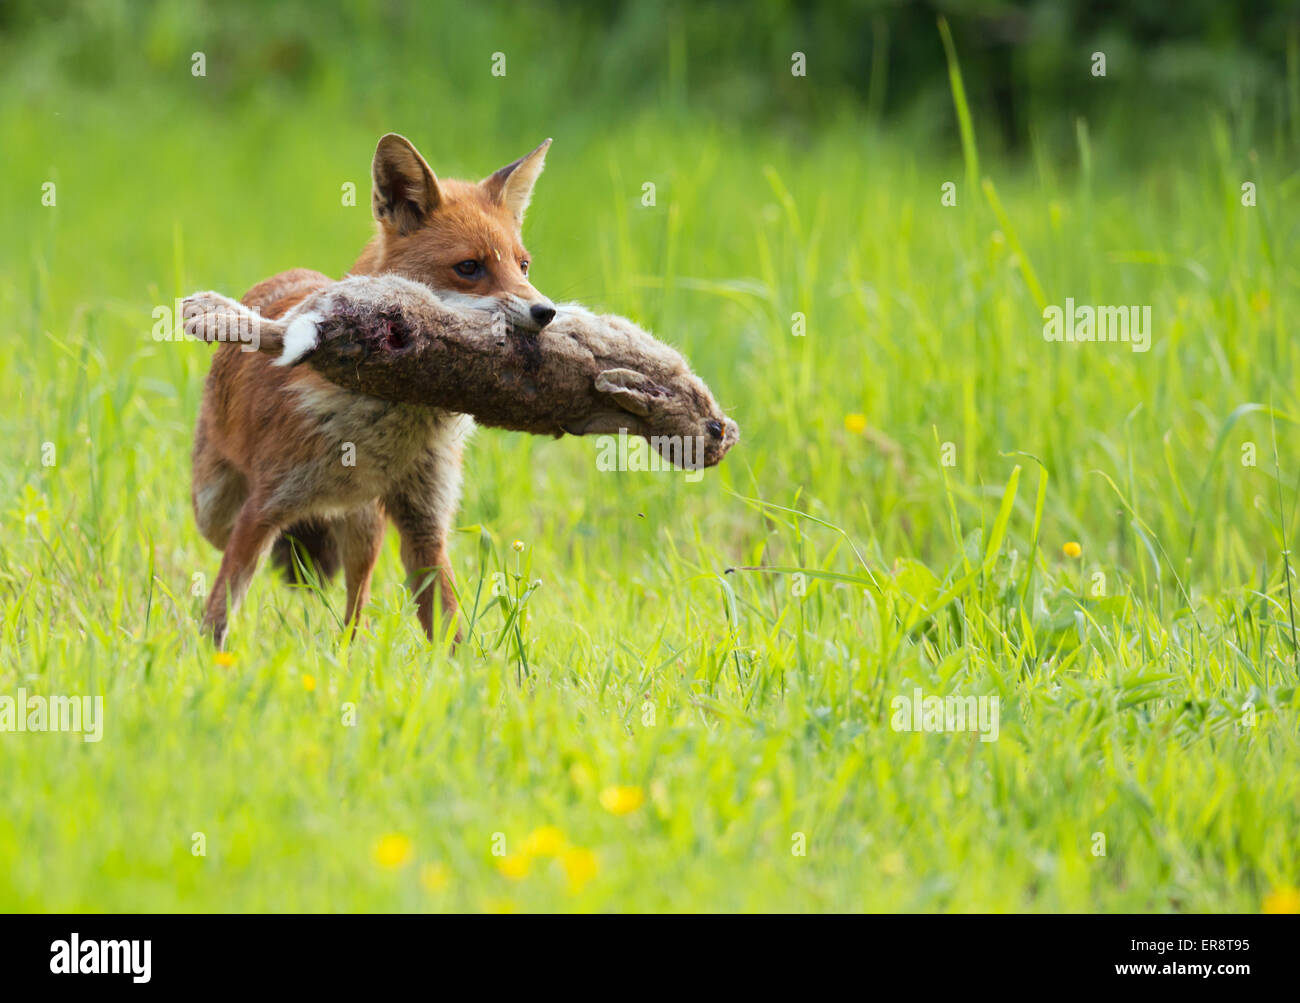 Wild red fox (Vulpes vulpes) avec lapin Banque D'Images